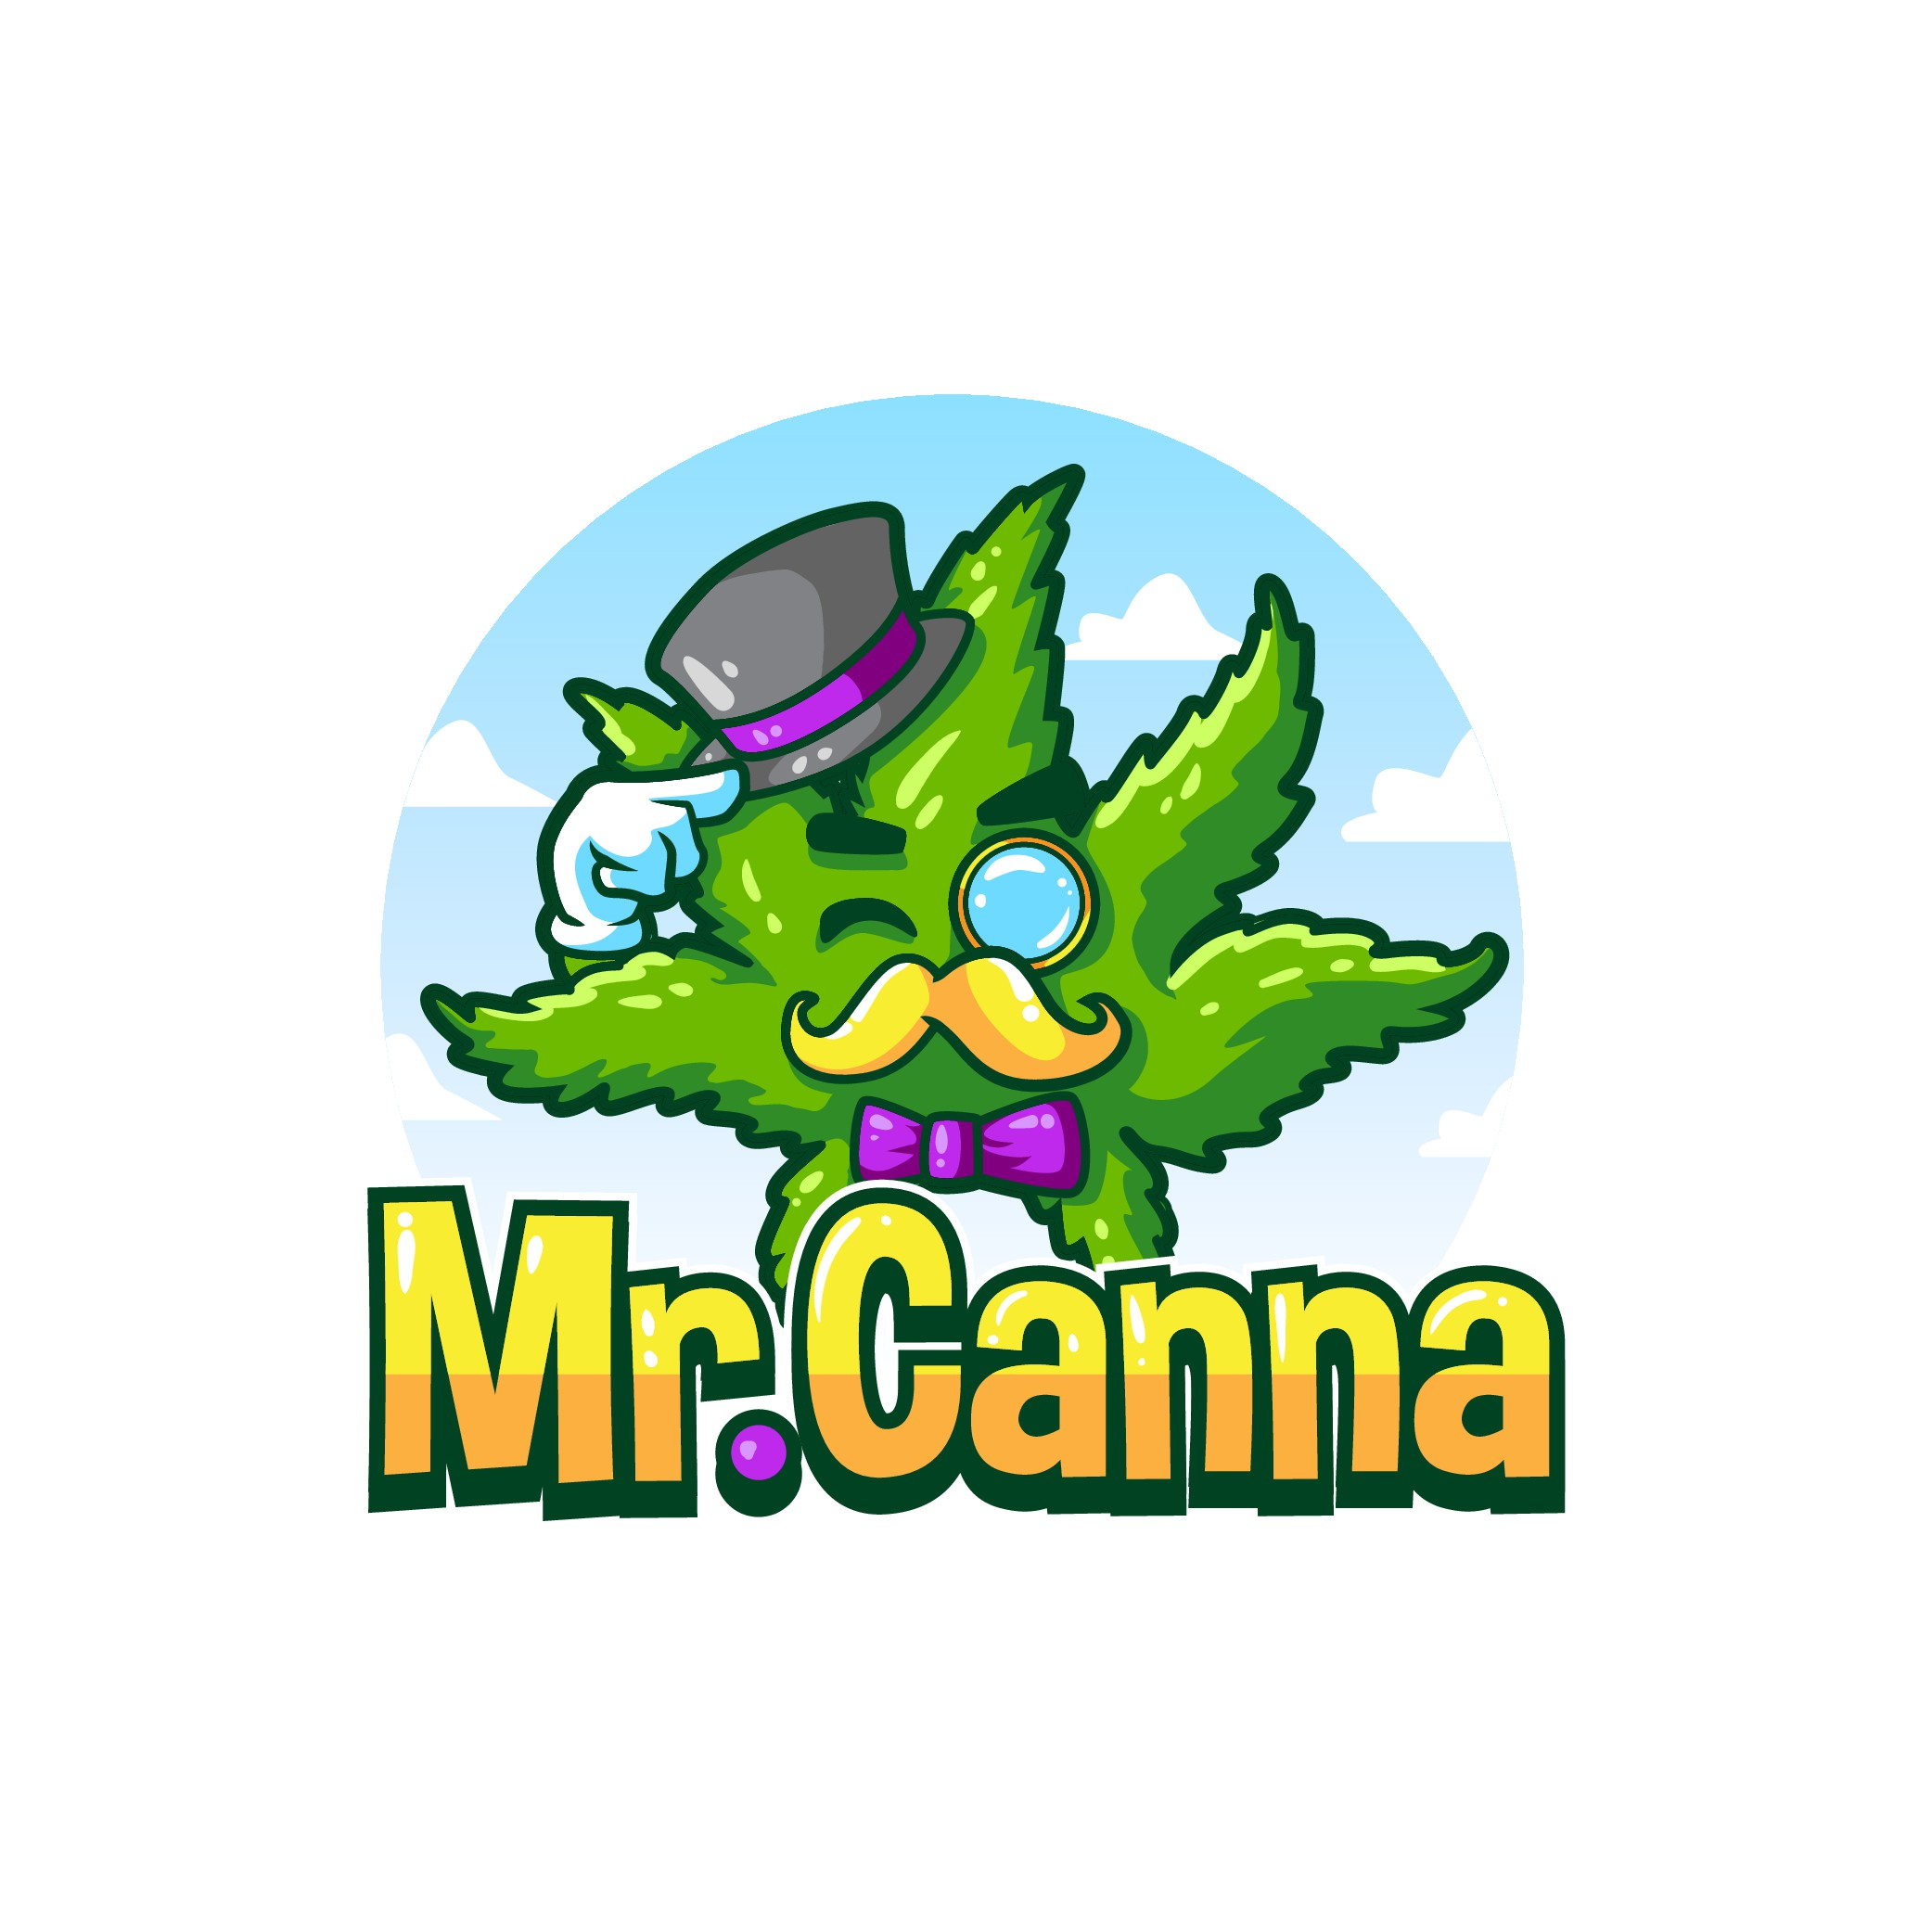 Mr. Canna - The Weed Brand